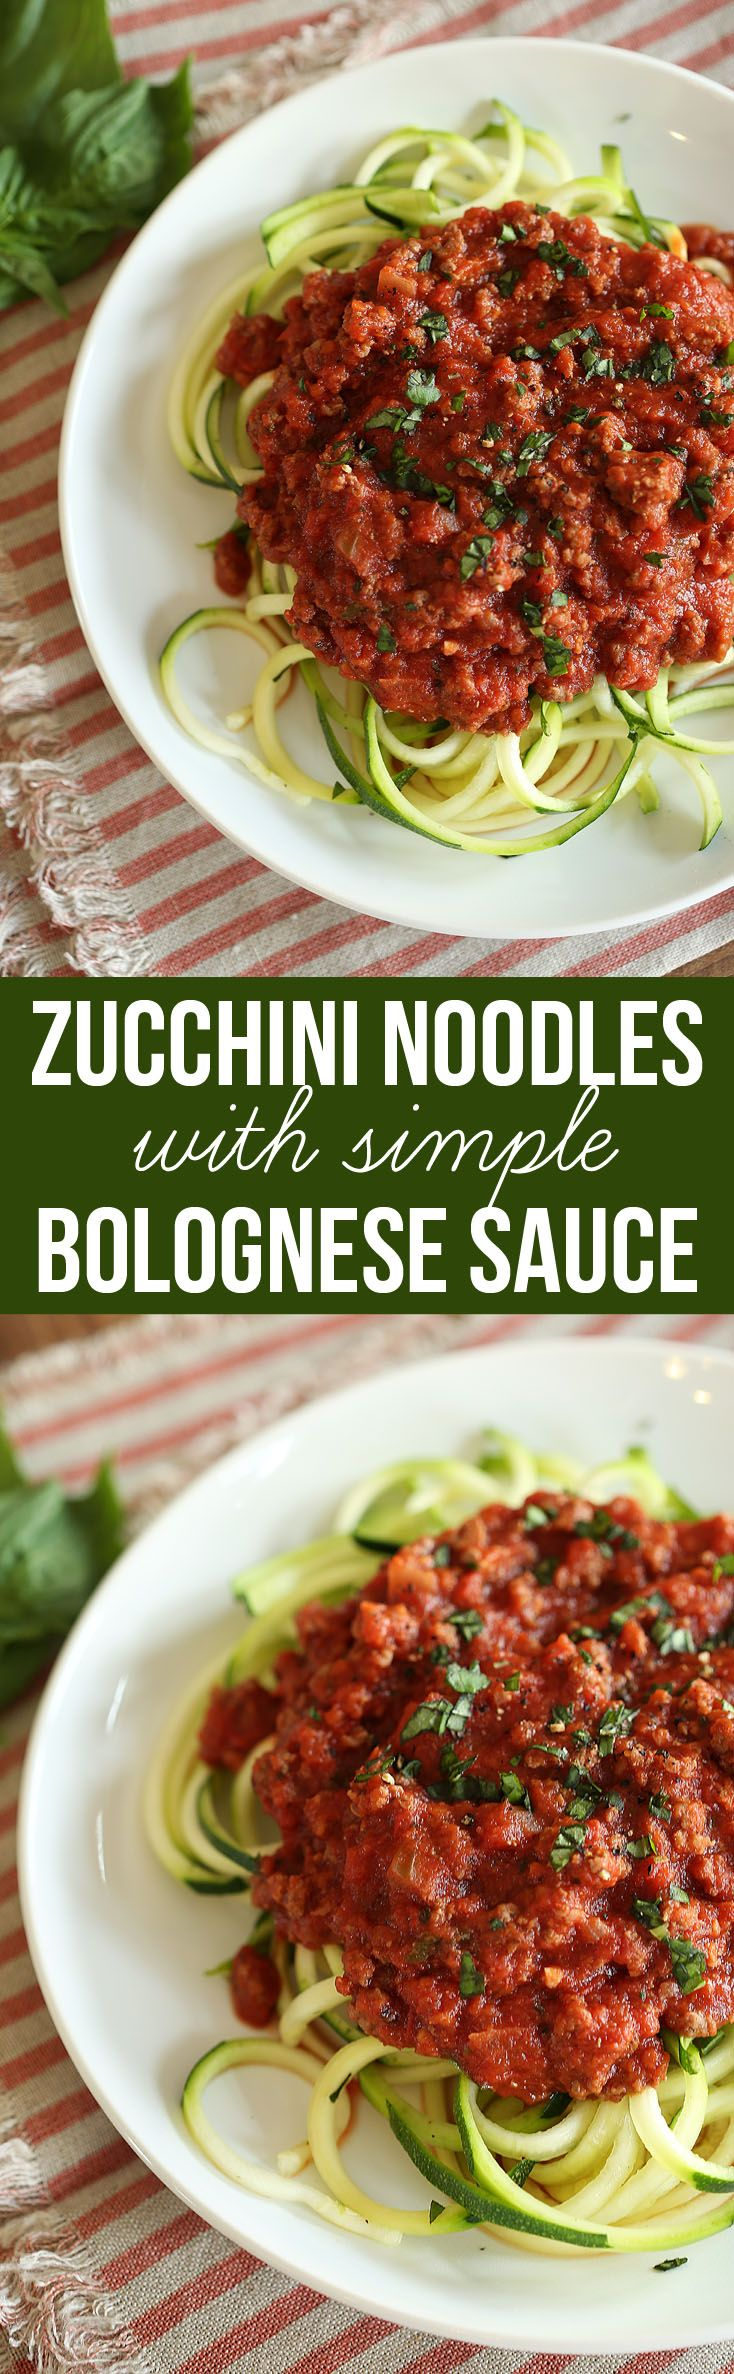 Zucchini Noodles with Simple Bolognese Sauce | Eat Yourself Skinny 1 1/2 sauce + zoodles= WWSP6